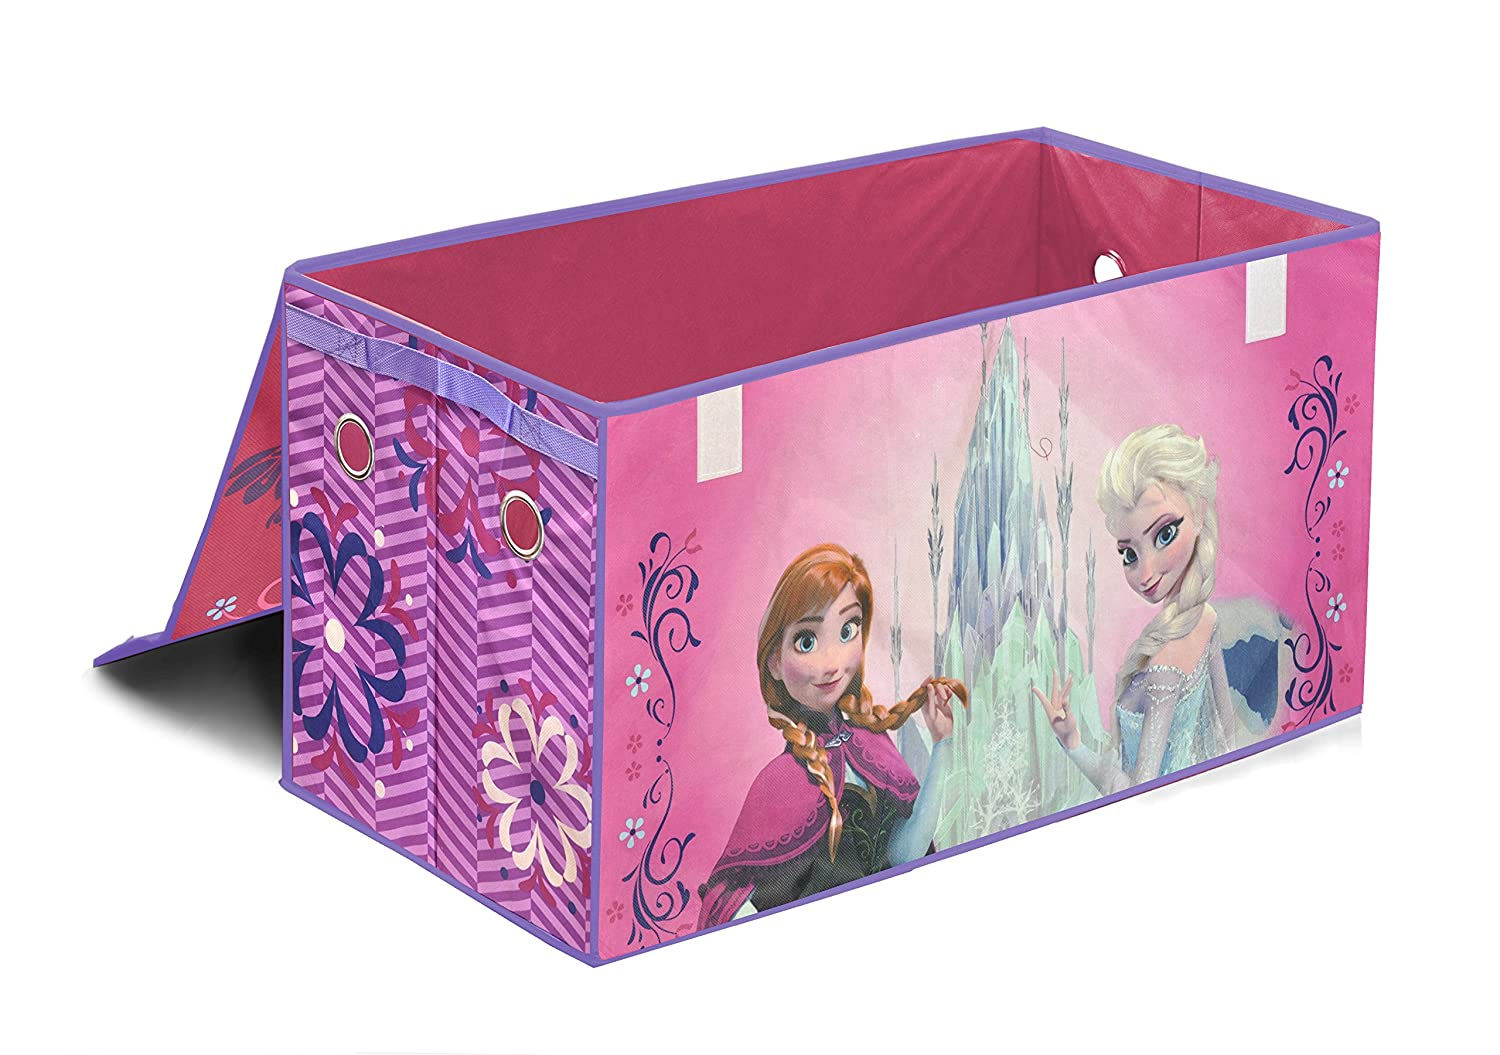 Disney Frozen Collapsible Storage Trunk New Free Shipping EBay